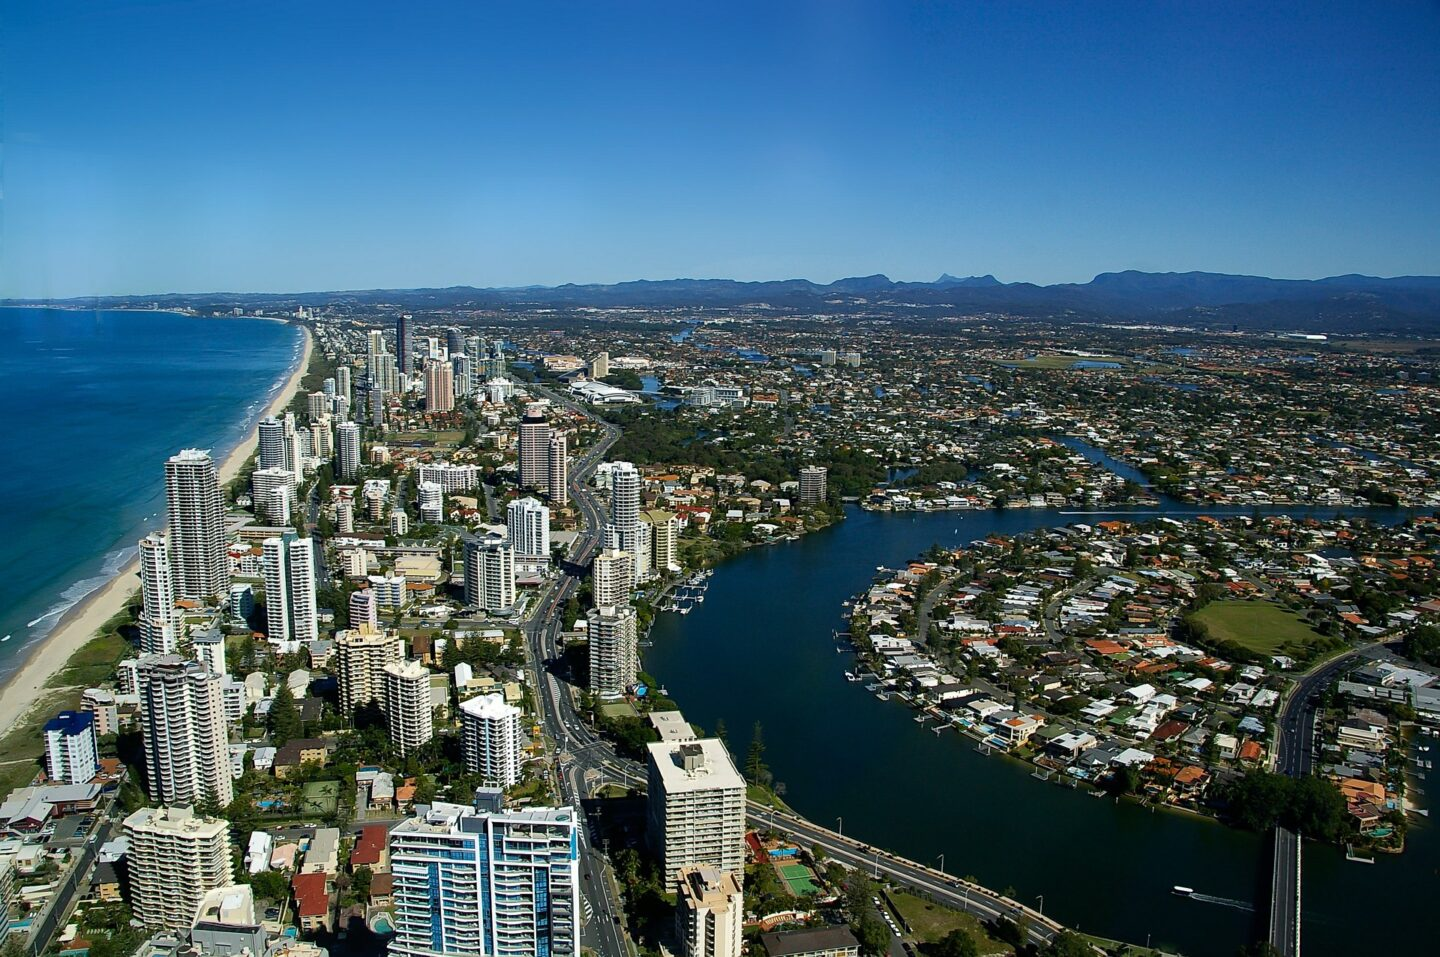 Australia: You May Need A Hand When Exploring Queensland